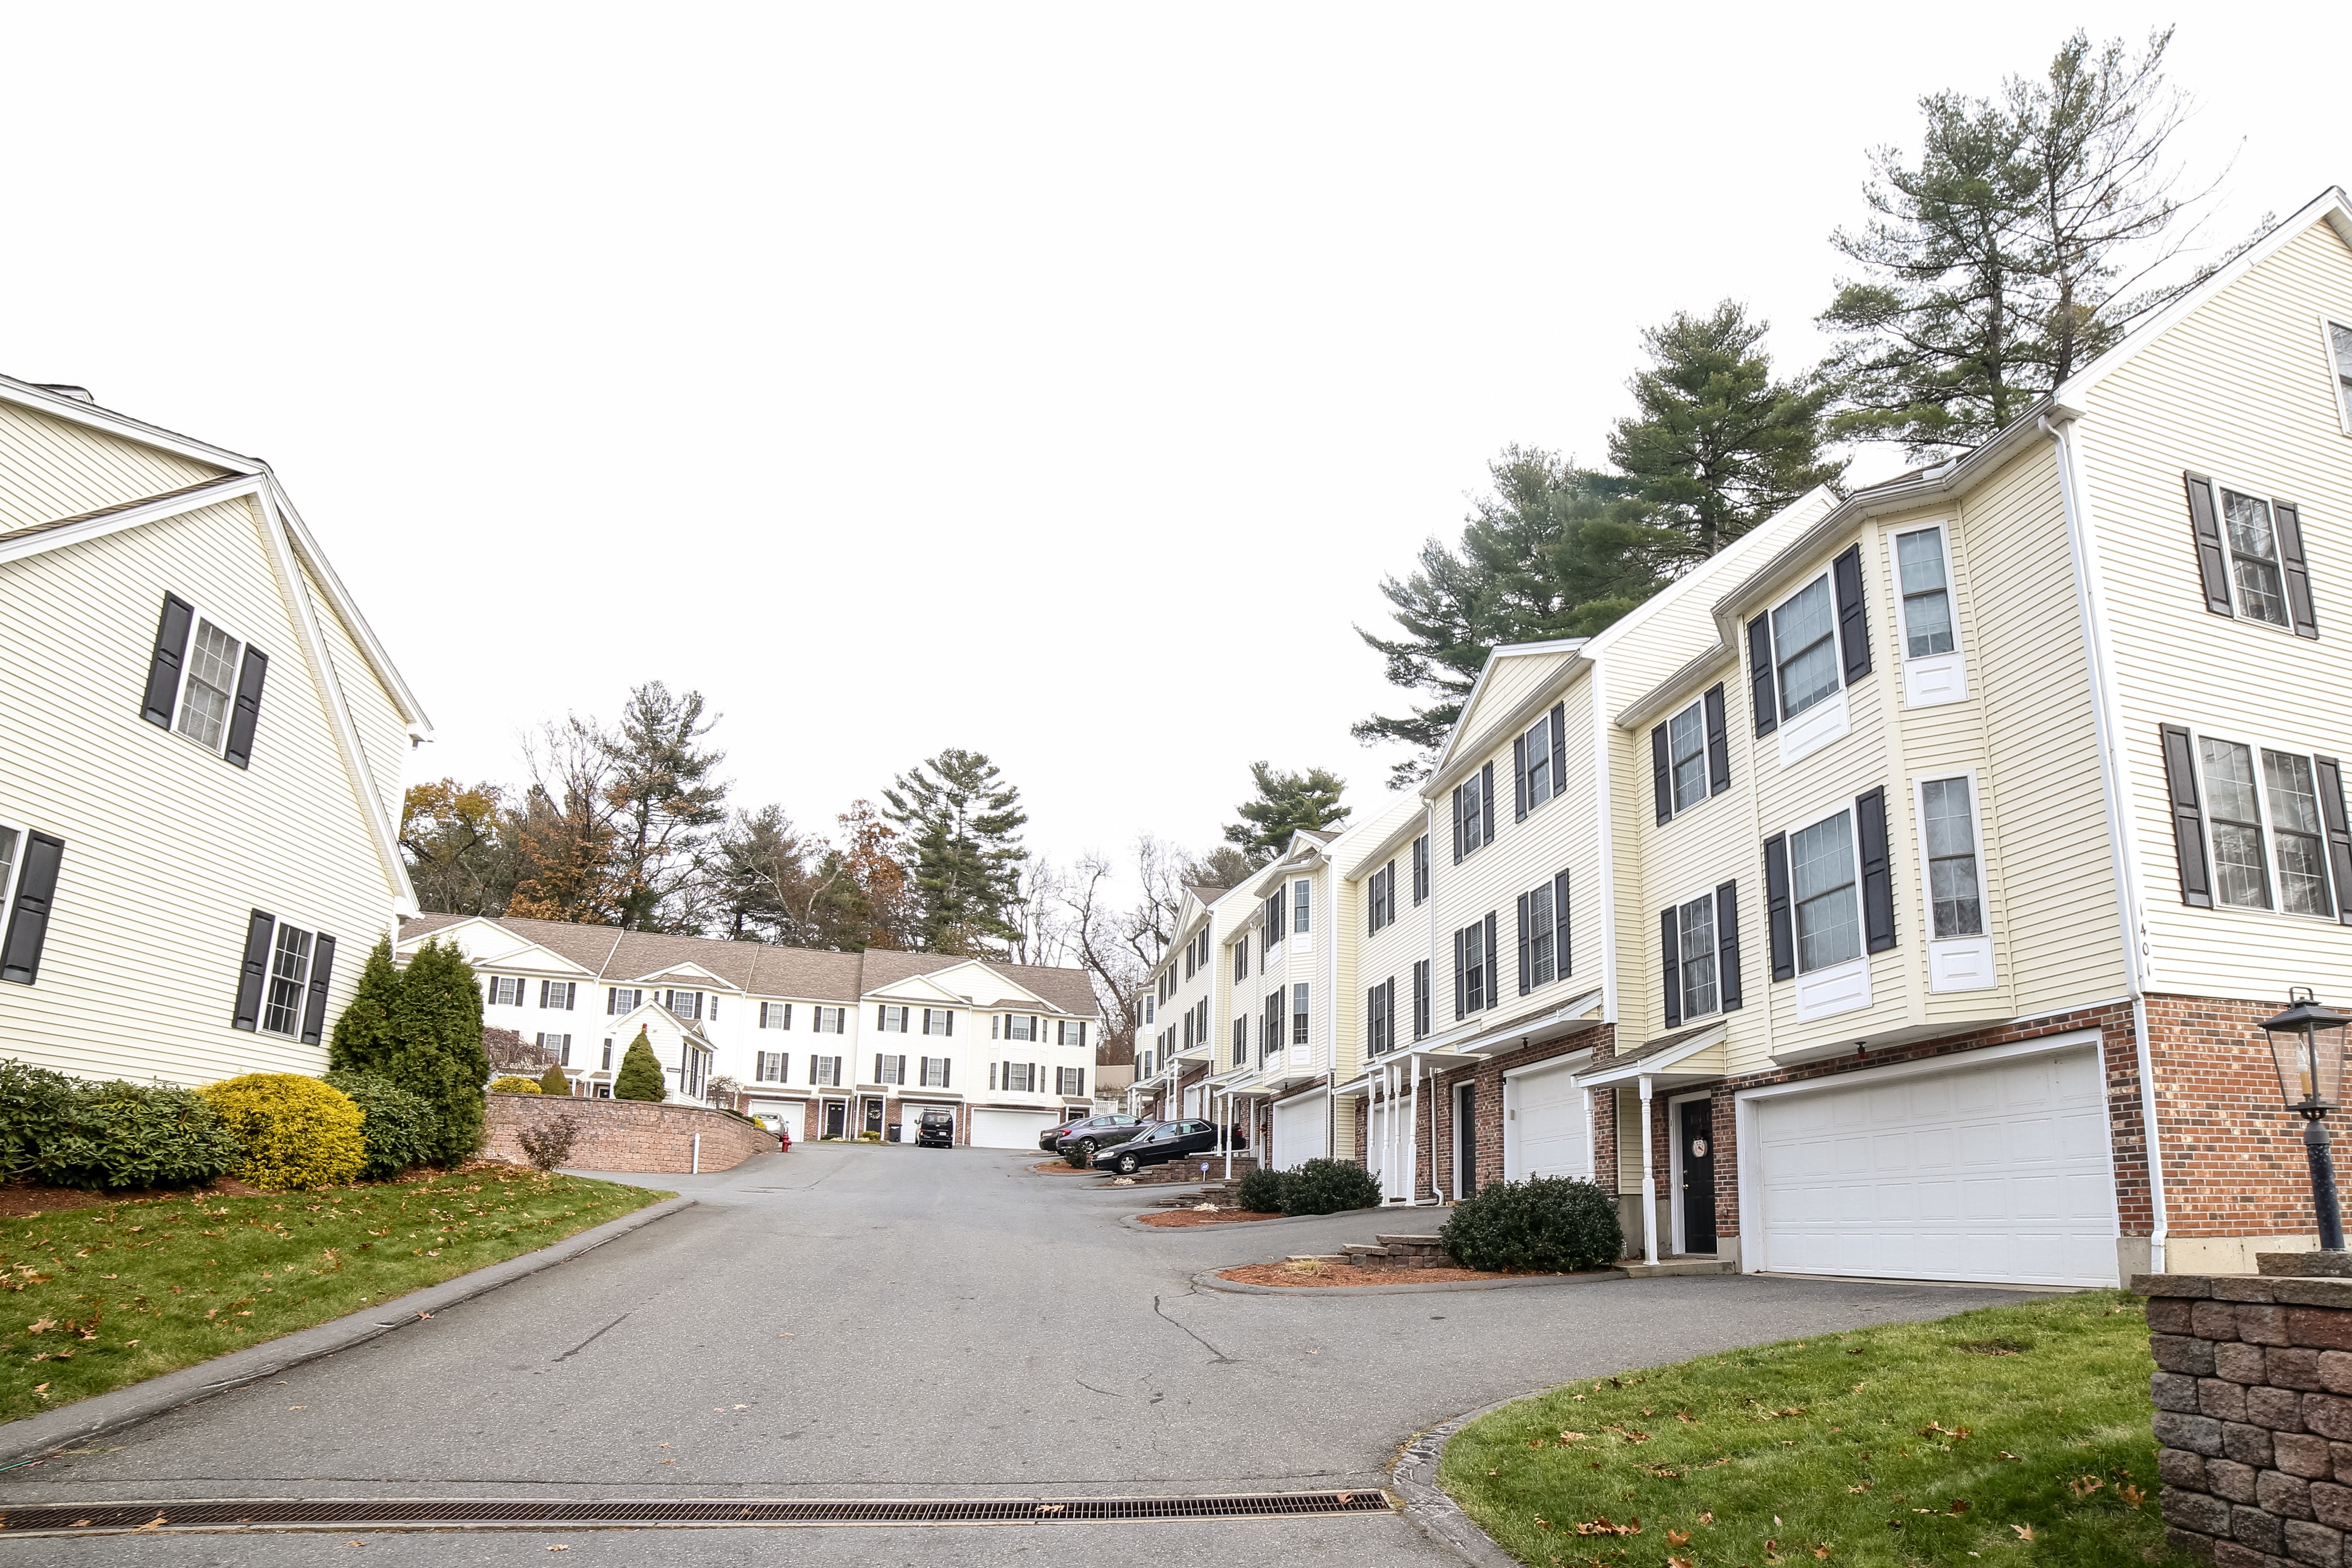 Riverbend at Merrimack Condos, Lowell, MA - Current Listings & Pictures